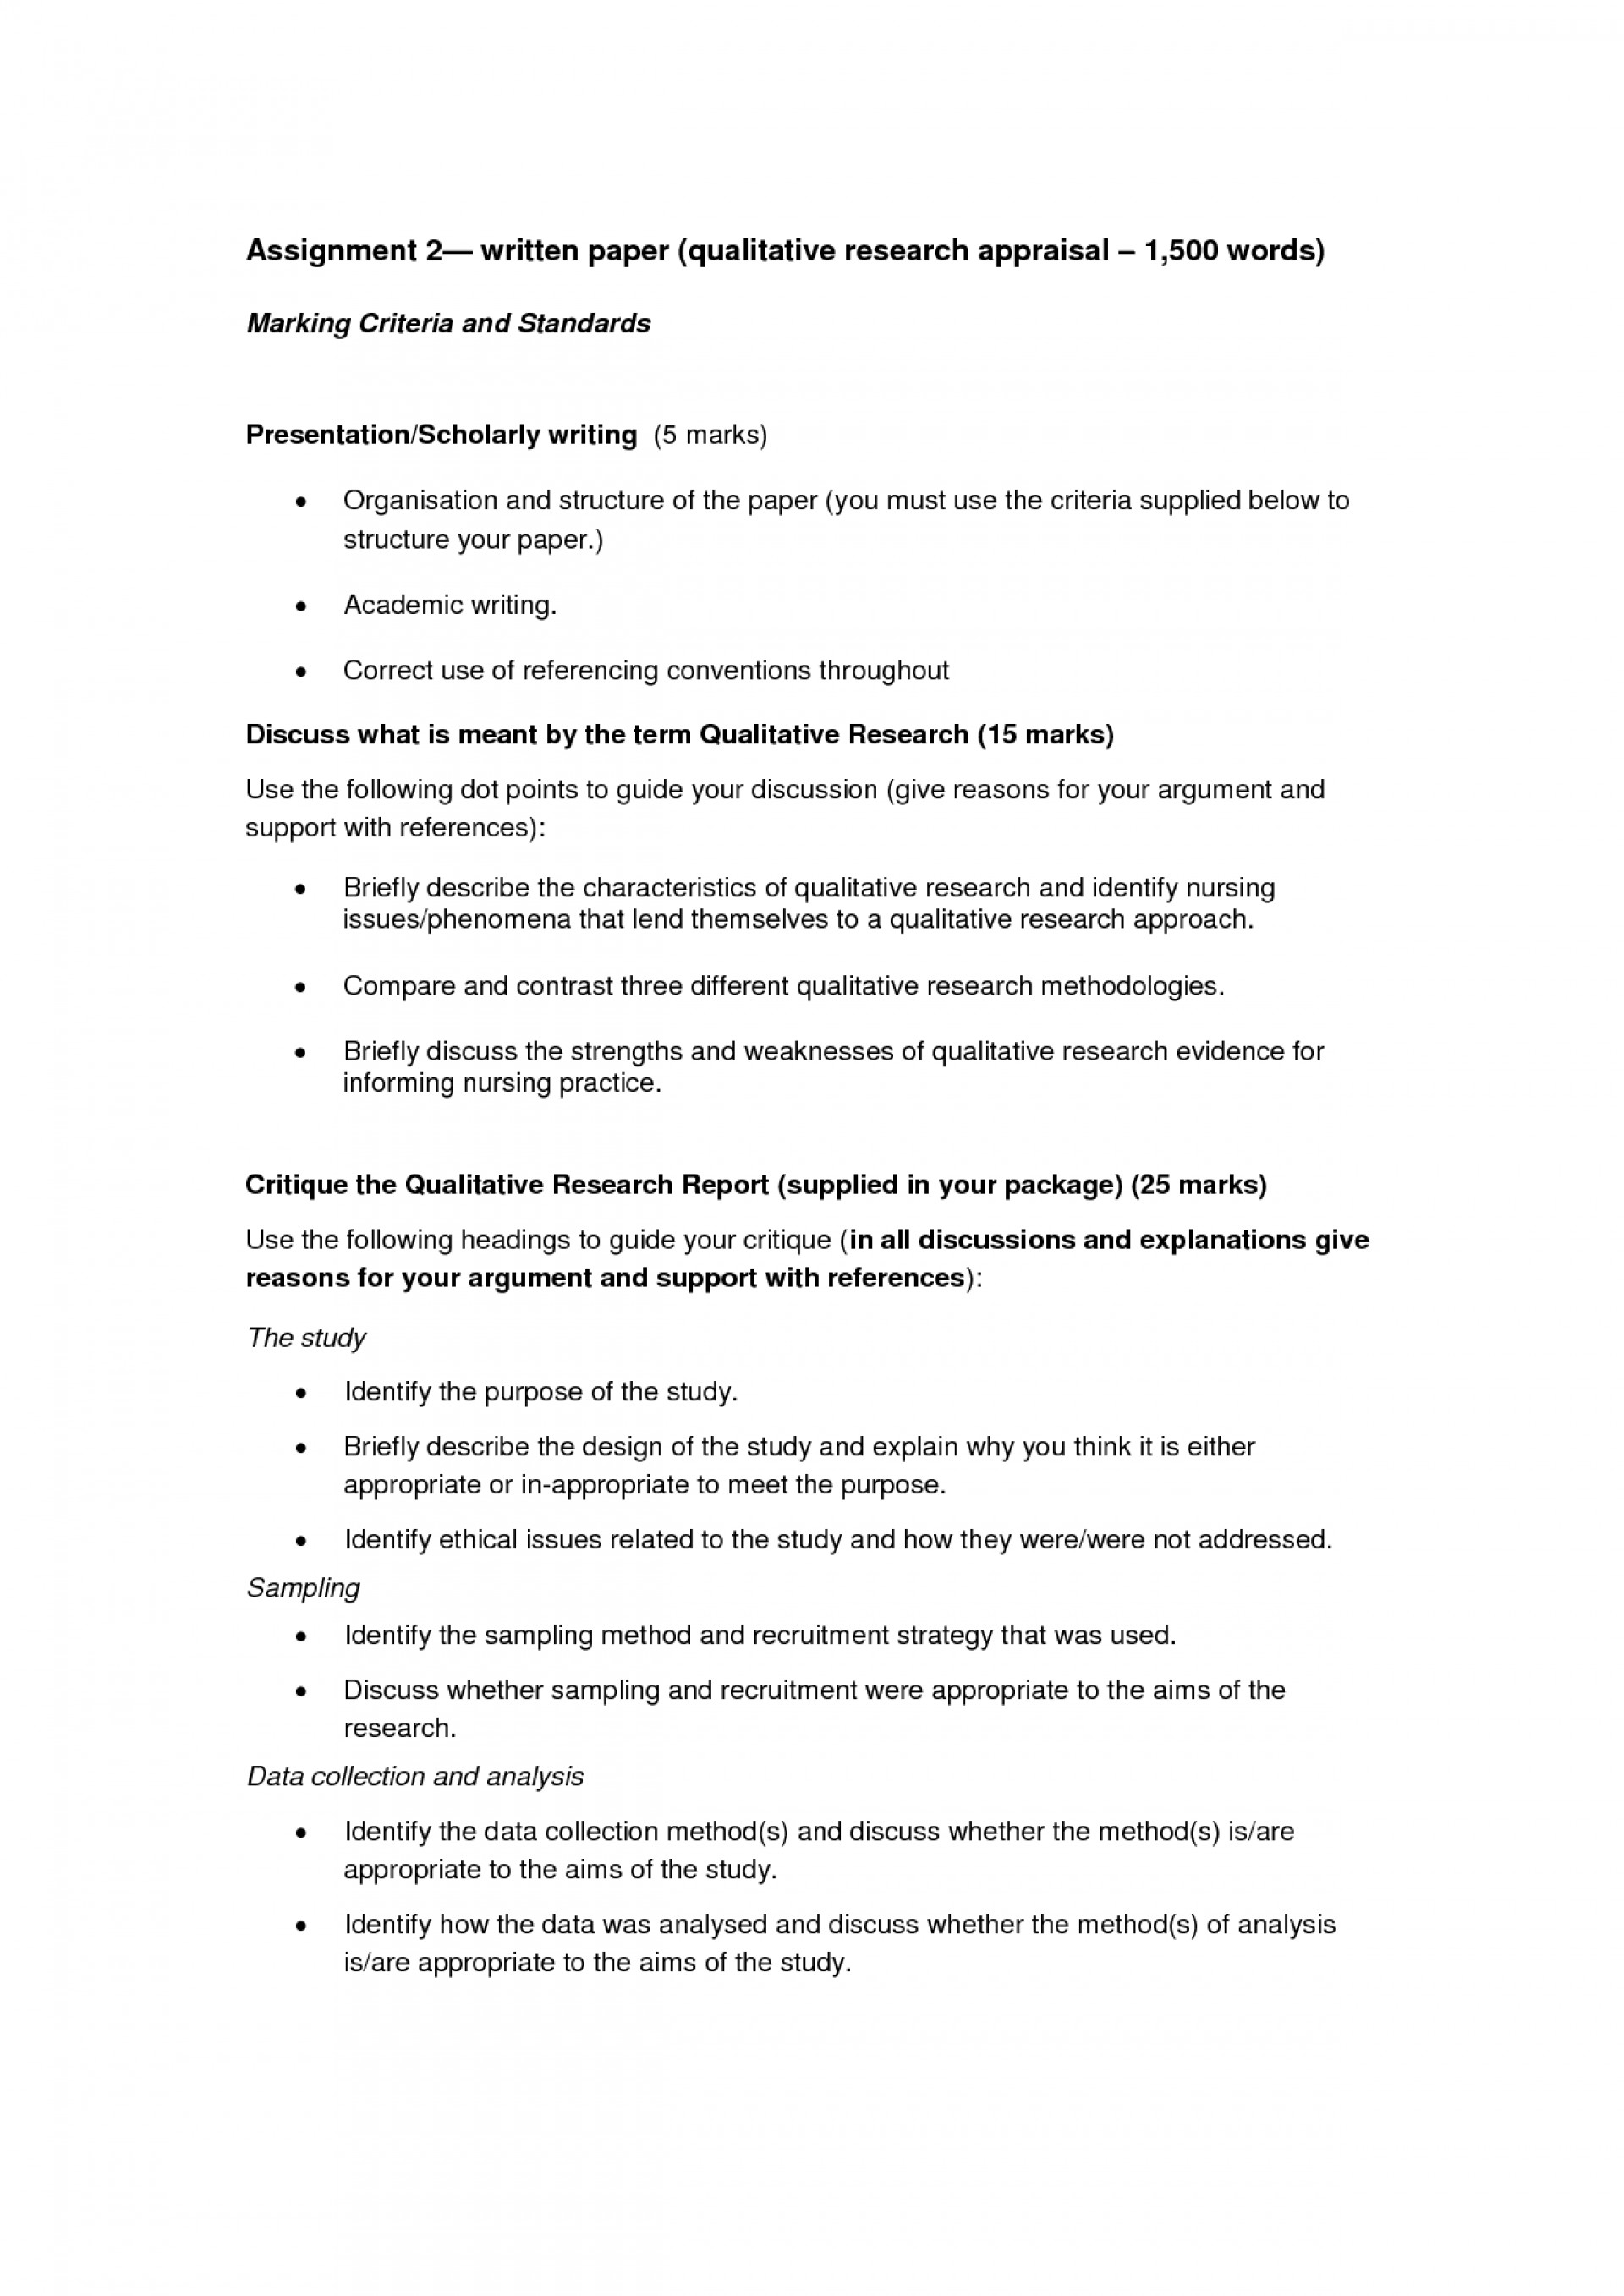 002 Research Paper Format Writing Amazing Qualitative 1920